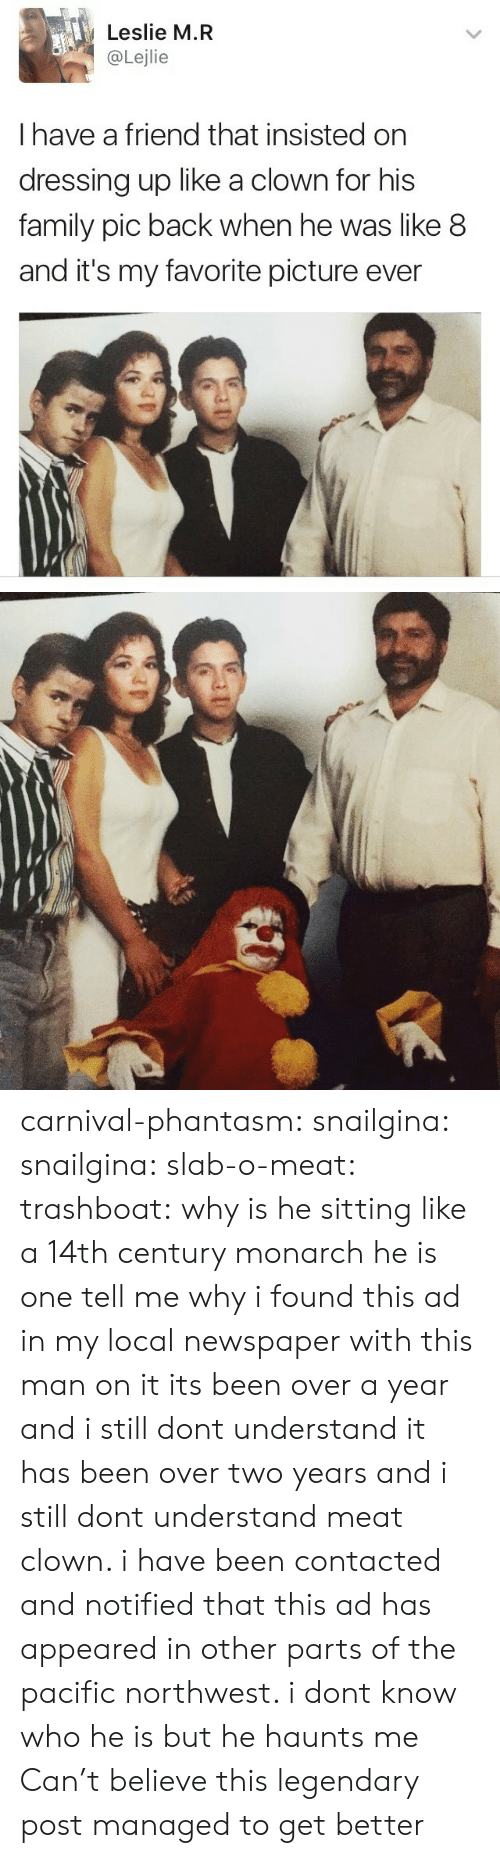 Managed: Leslie M.R  @Lejlie  I have a friend that insisted on  dressing up like a clown for his  family pic back when he was like 8  and it's my favorite picture ever carnival-phantasm: snailgina:  snailgina:   slab-o-meat:  trashboat: why is he sitting like a 14th century monarch   he is one   tell me why i found this ad in my local newspaper with this man on it its been over a year and i still dont understand   it has been over two years and i still dont understand meat clown. i have been contacted and notified that this ad has appeared in other parts of the pacific northwest. i dont know who he is but he haunts me   Can't believe this legendary post managed to get better